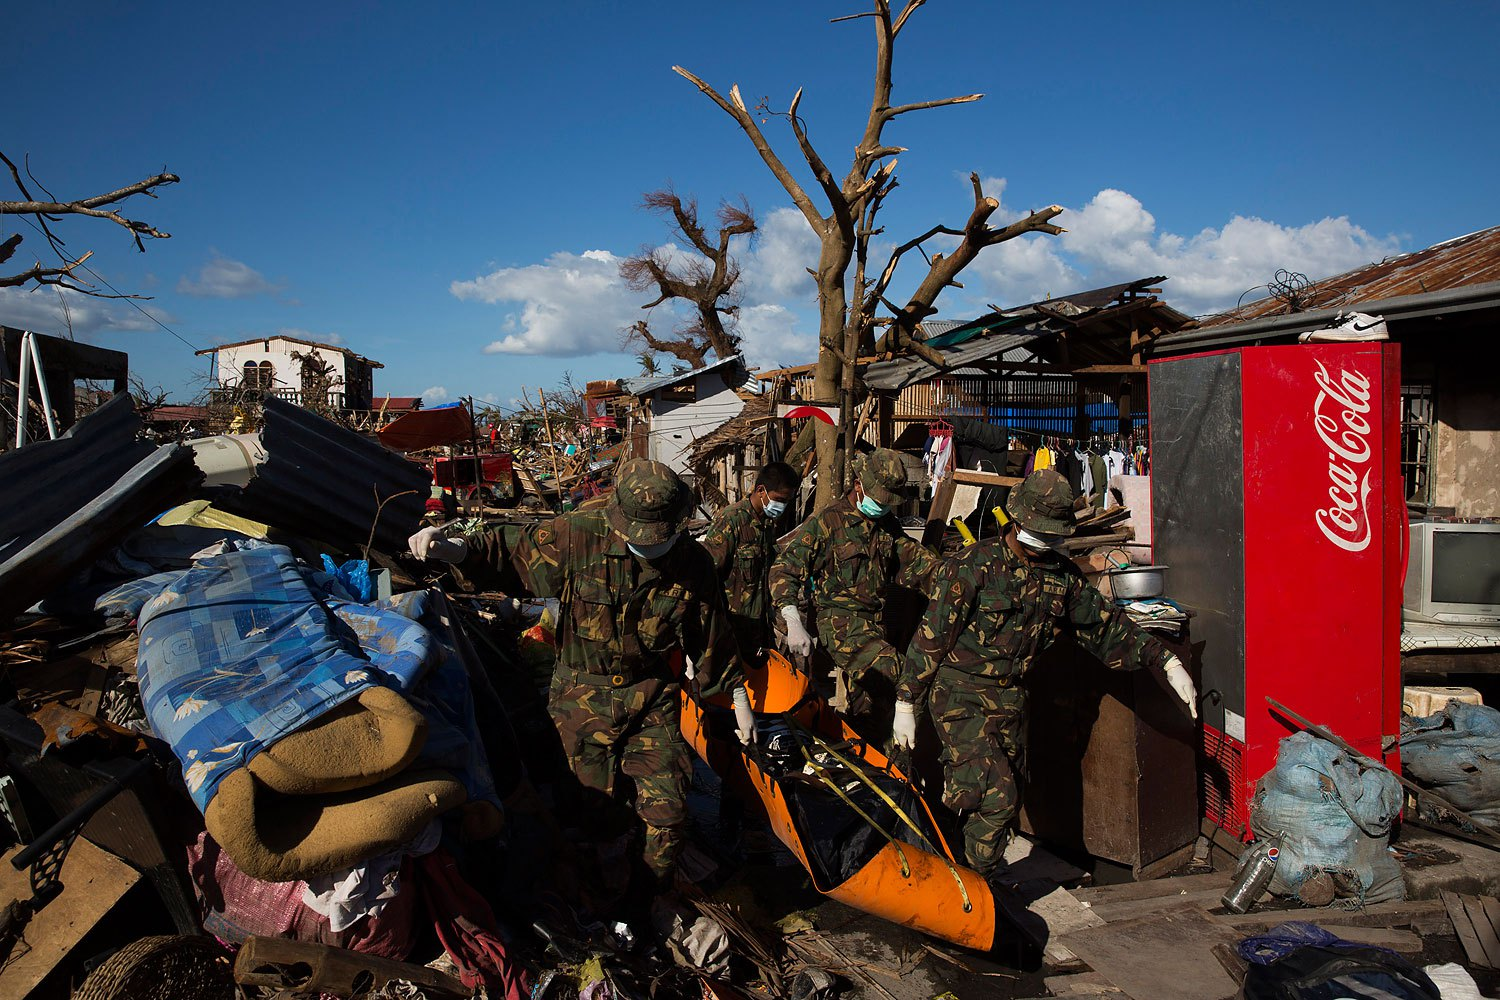 Soldiers and search and rescue teams collect bodies of people killed by Typhoon Haiyan in Tanuan, Philippines on November 15, 2013.